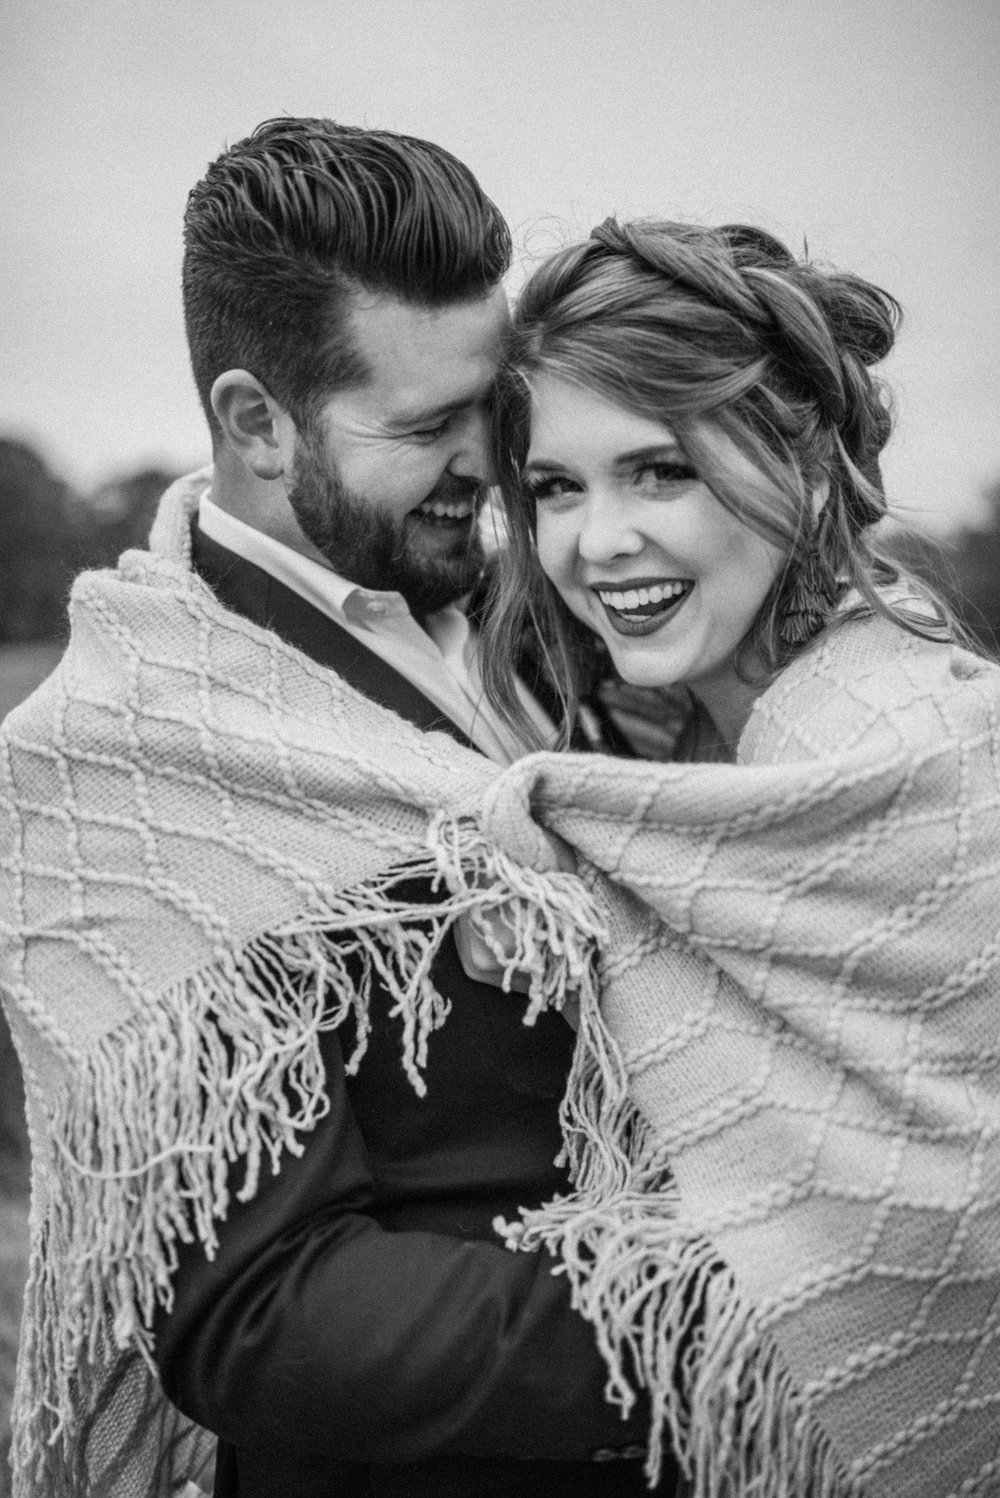 sabel moments photography, dallas wedding photographer, the forge venue, where to get married near dallas, boho bride, boho brunch, glam makeup